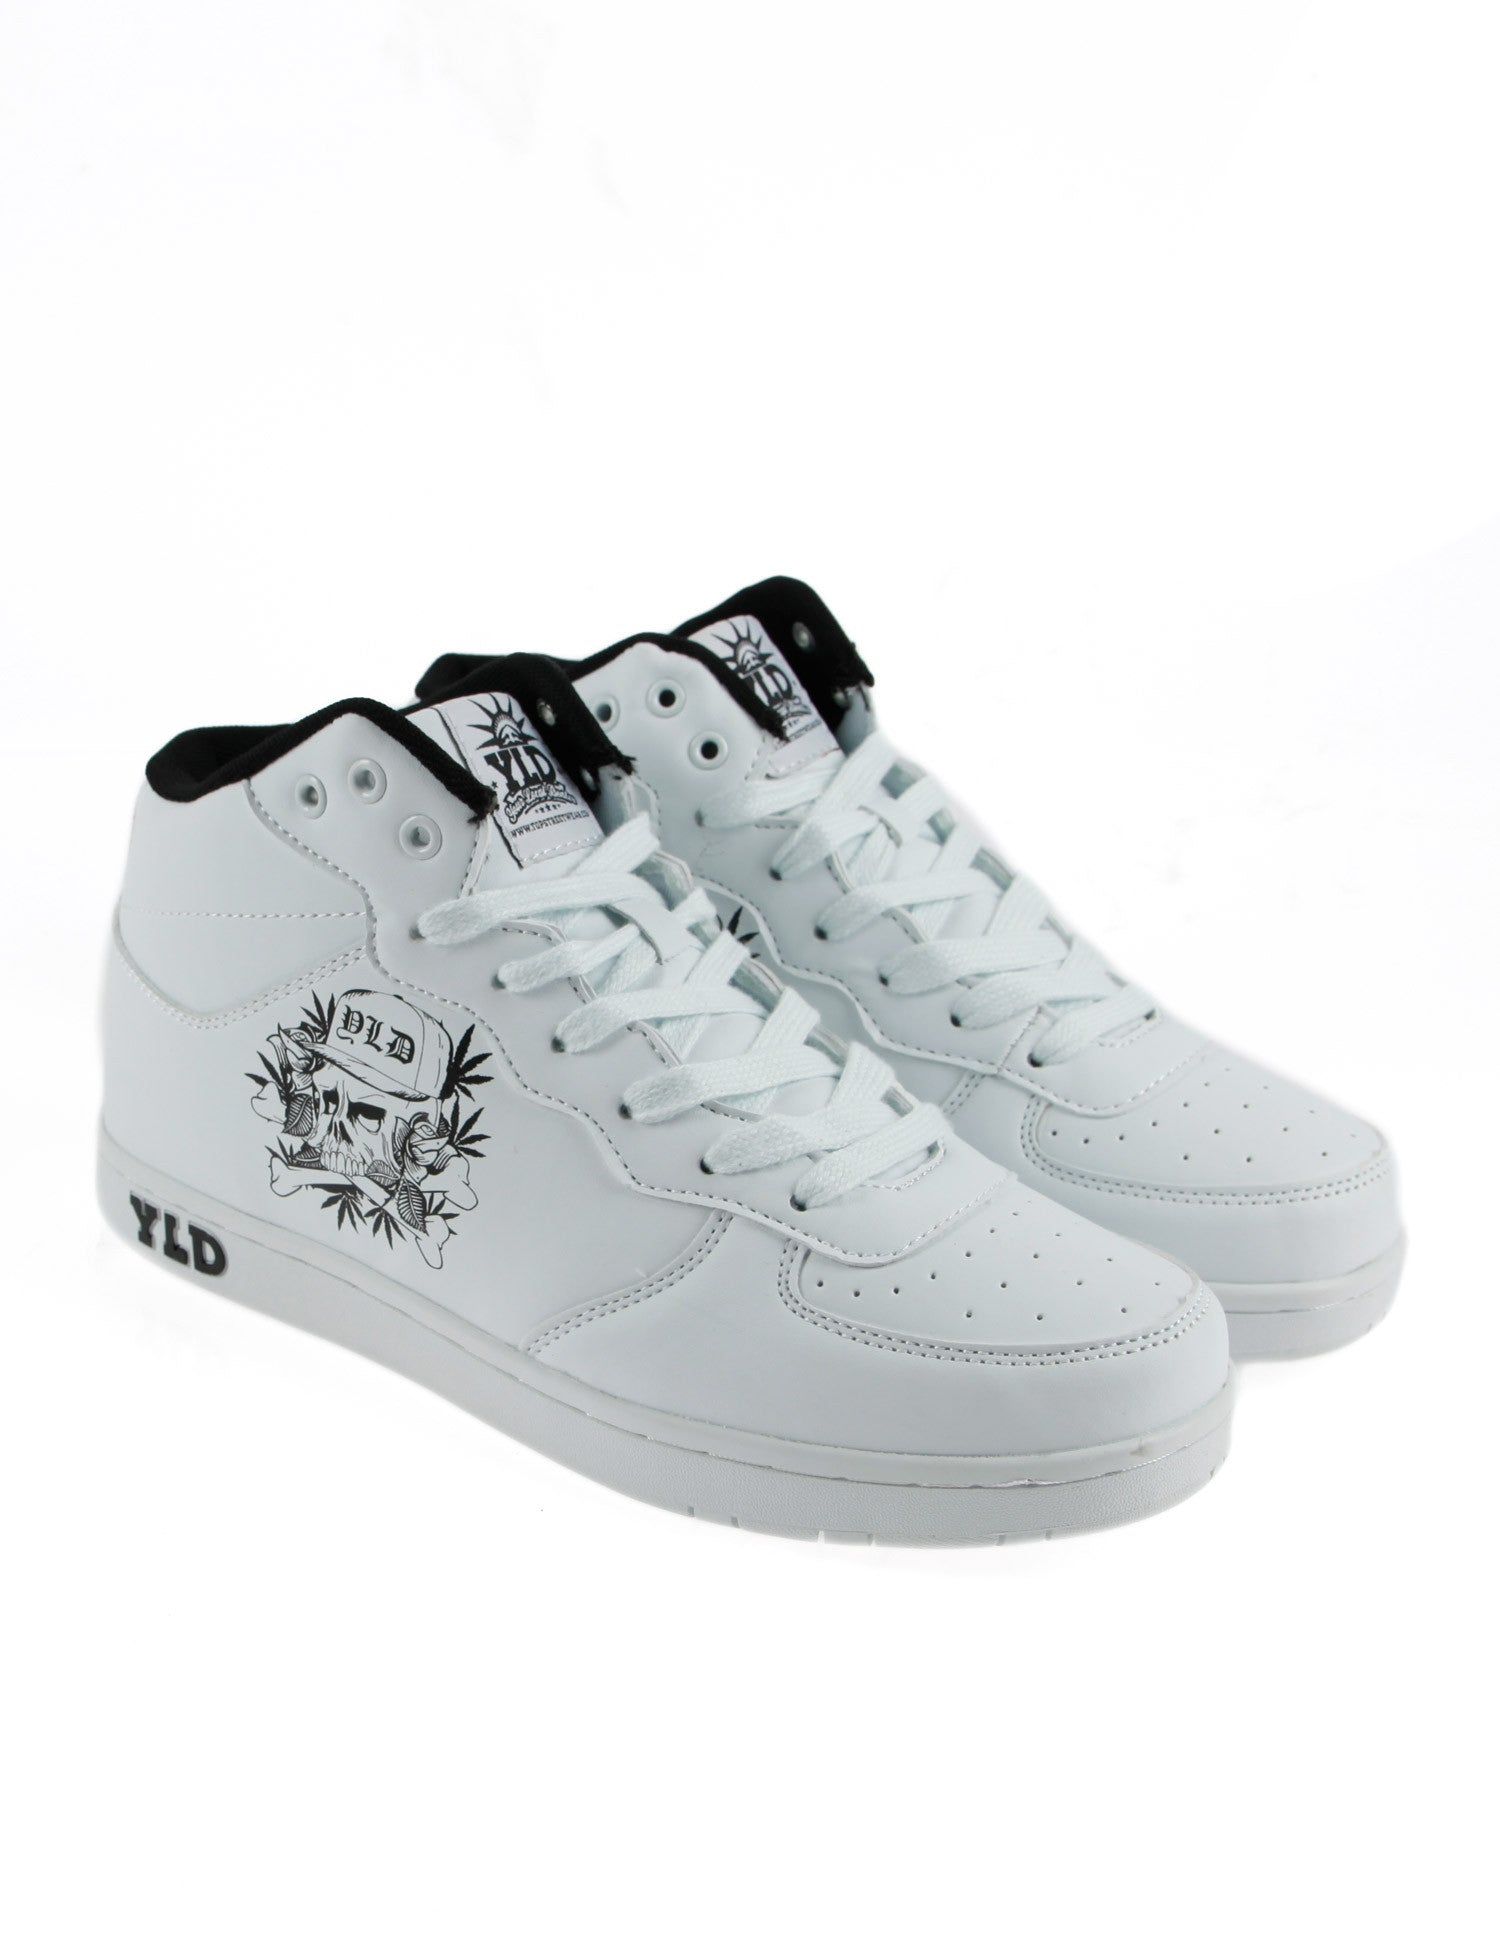 YLD Shoes G506D White